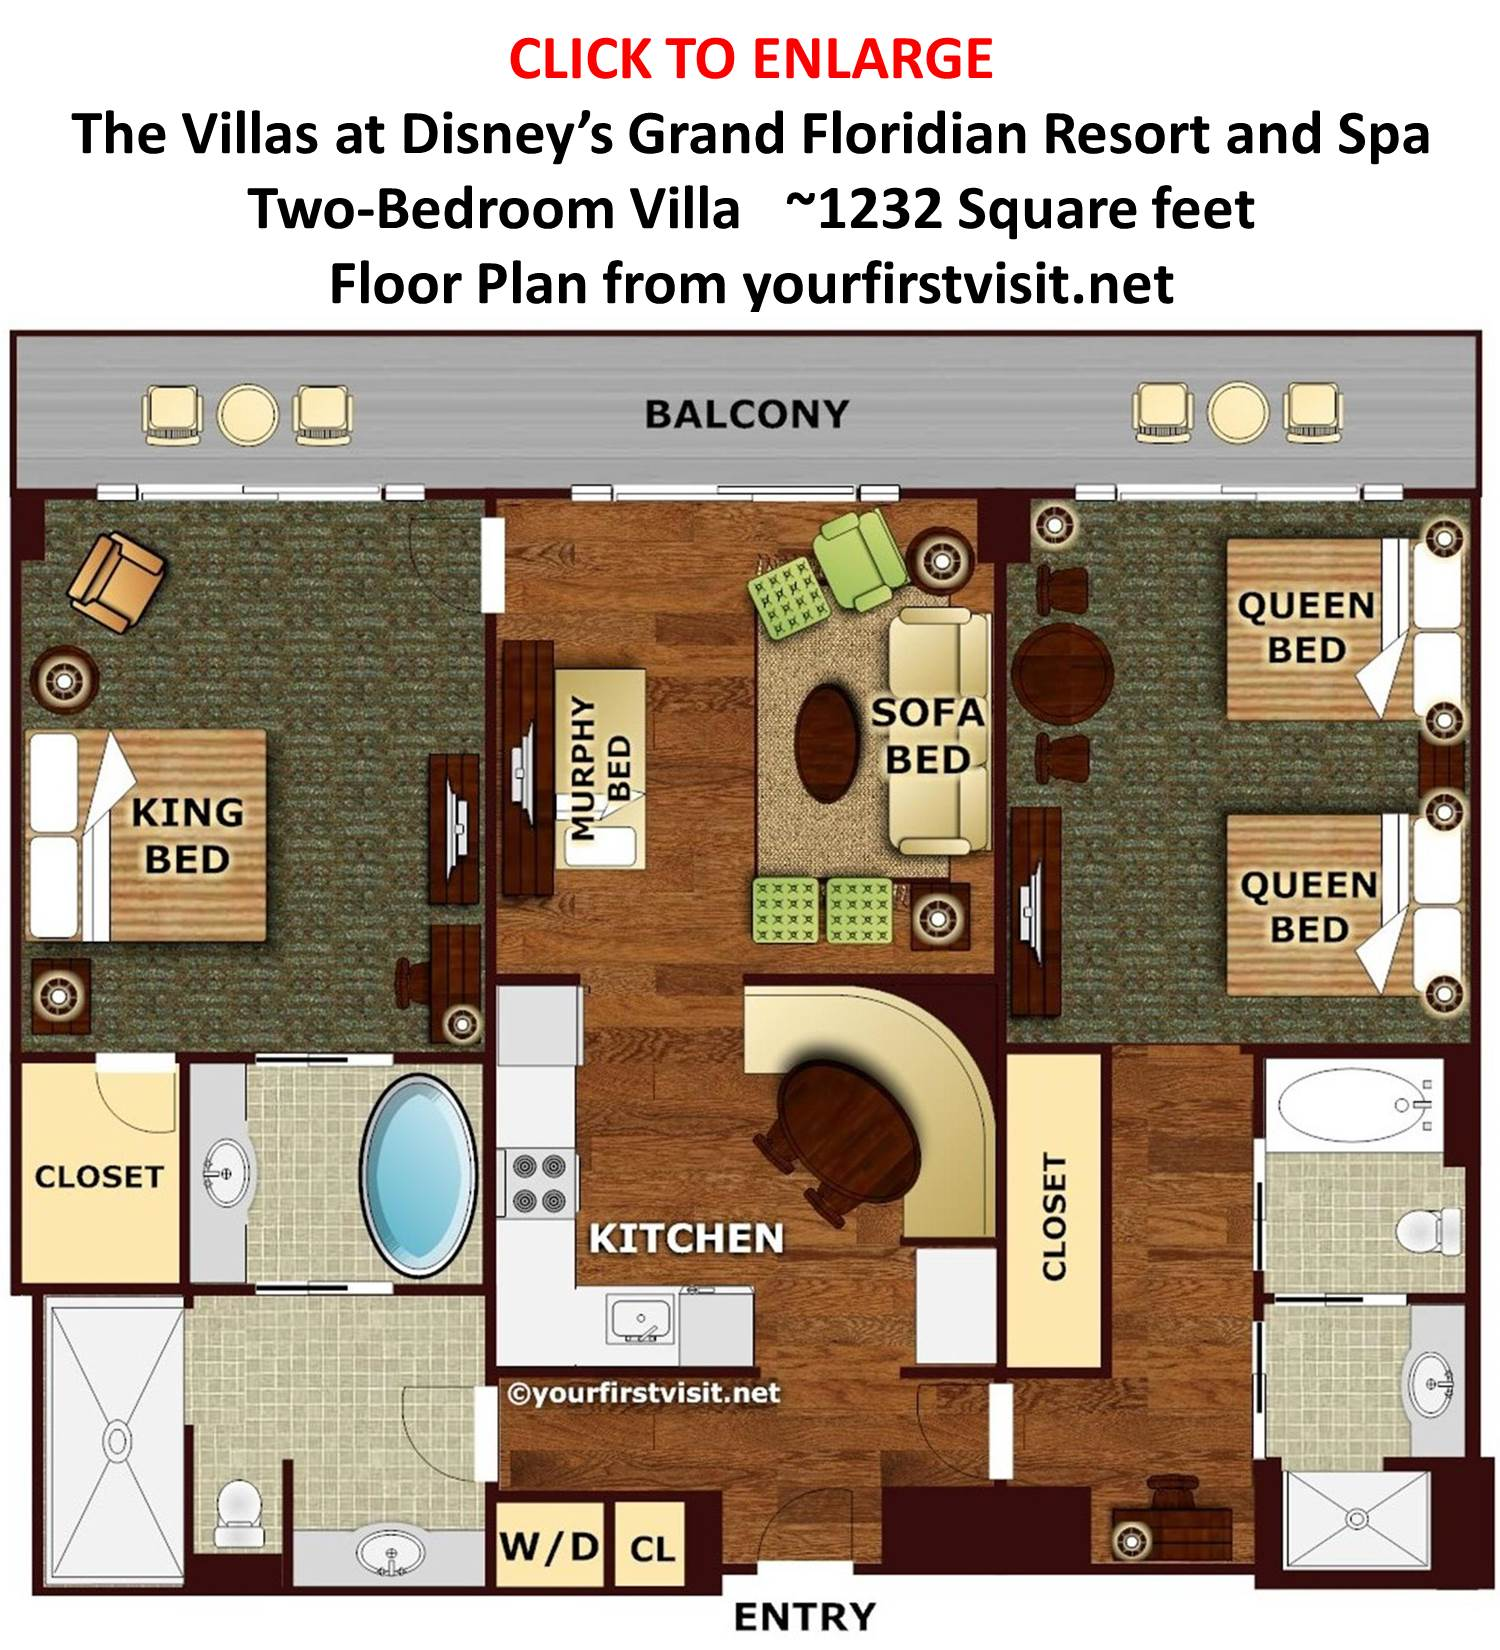 The Second Bedroom Or Studio At The Villas At Disney 39 S Grand Floridian Resort Spa